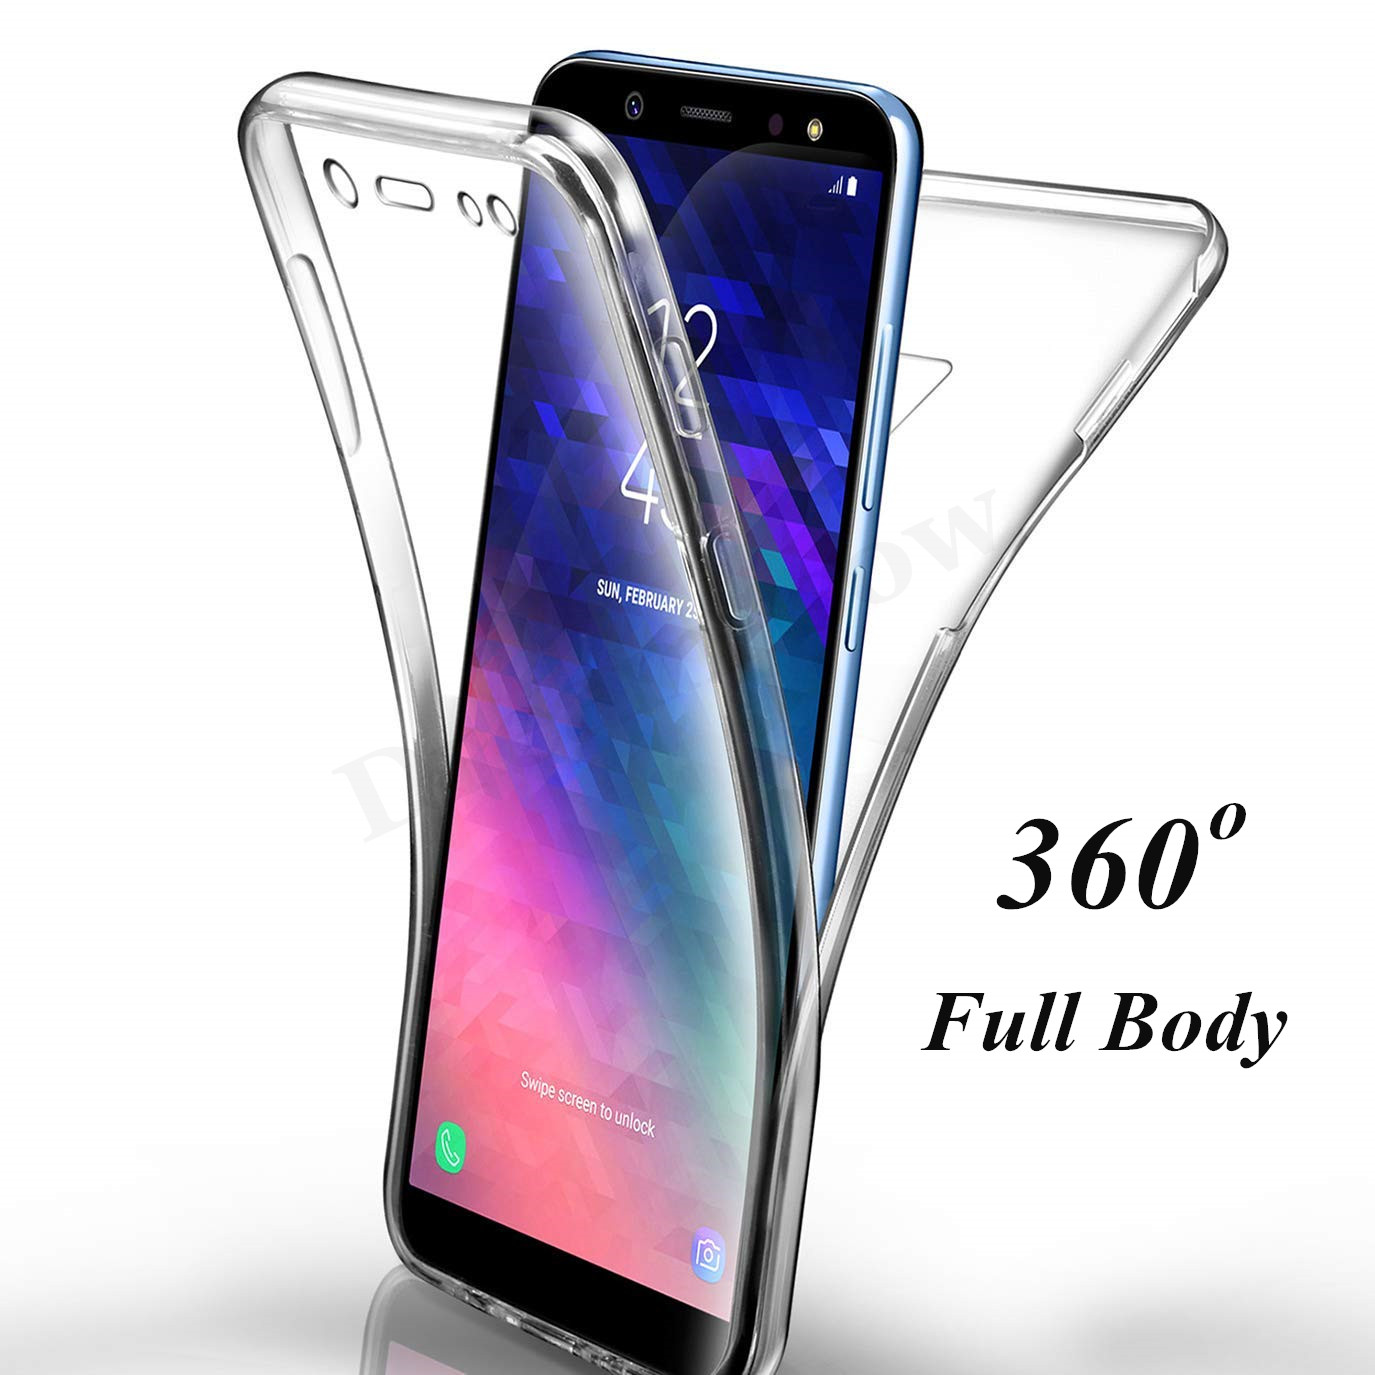 Full Body Soft TPU Case For Samsung Galaxy S10 Lite S9 S8 Plus A6 A8 Plus A750 A3 A5 A7 J3 J5 J7 2017 S6 S7 Edge Note 8 9 Case